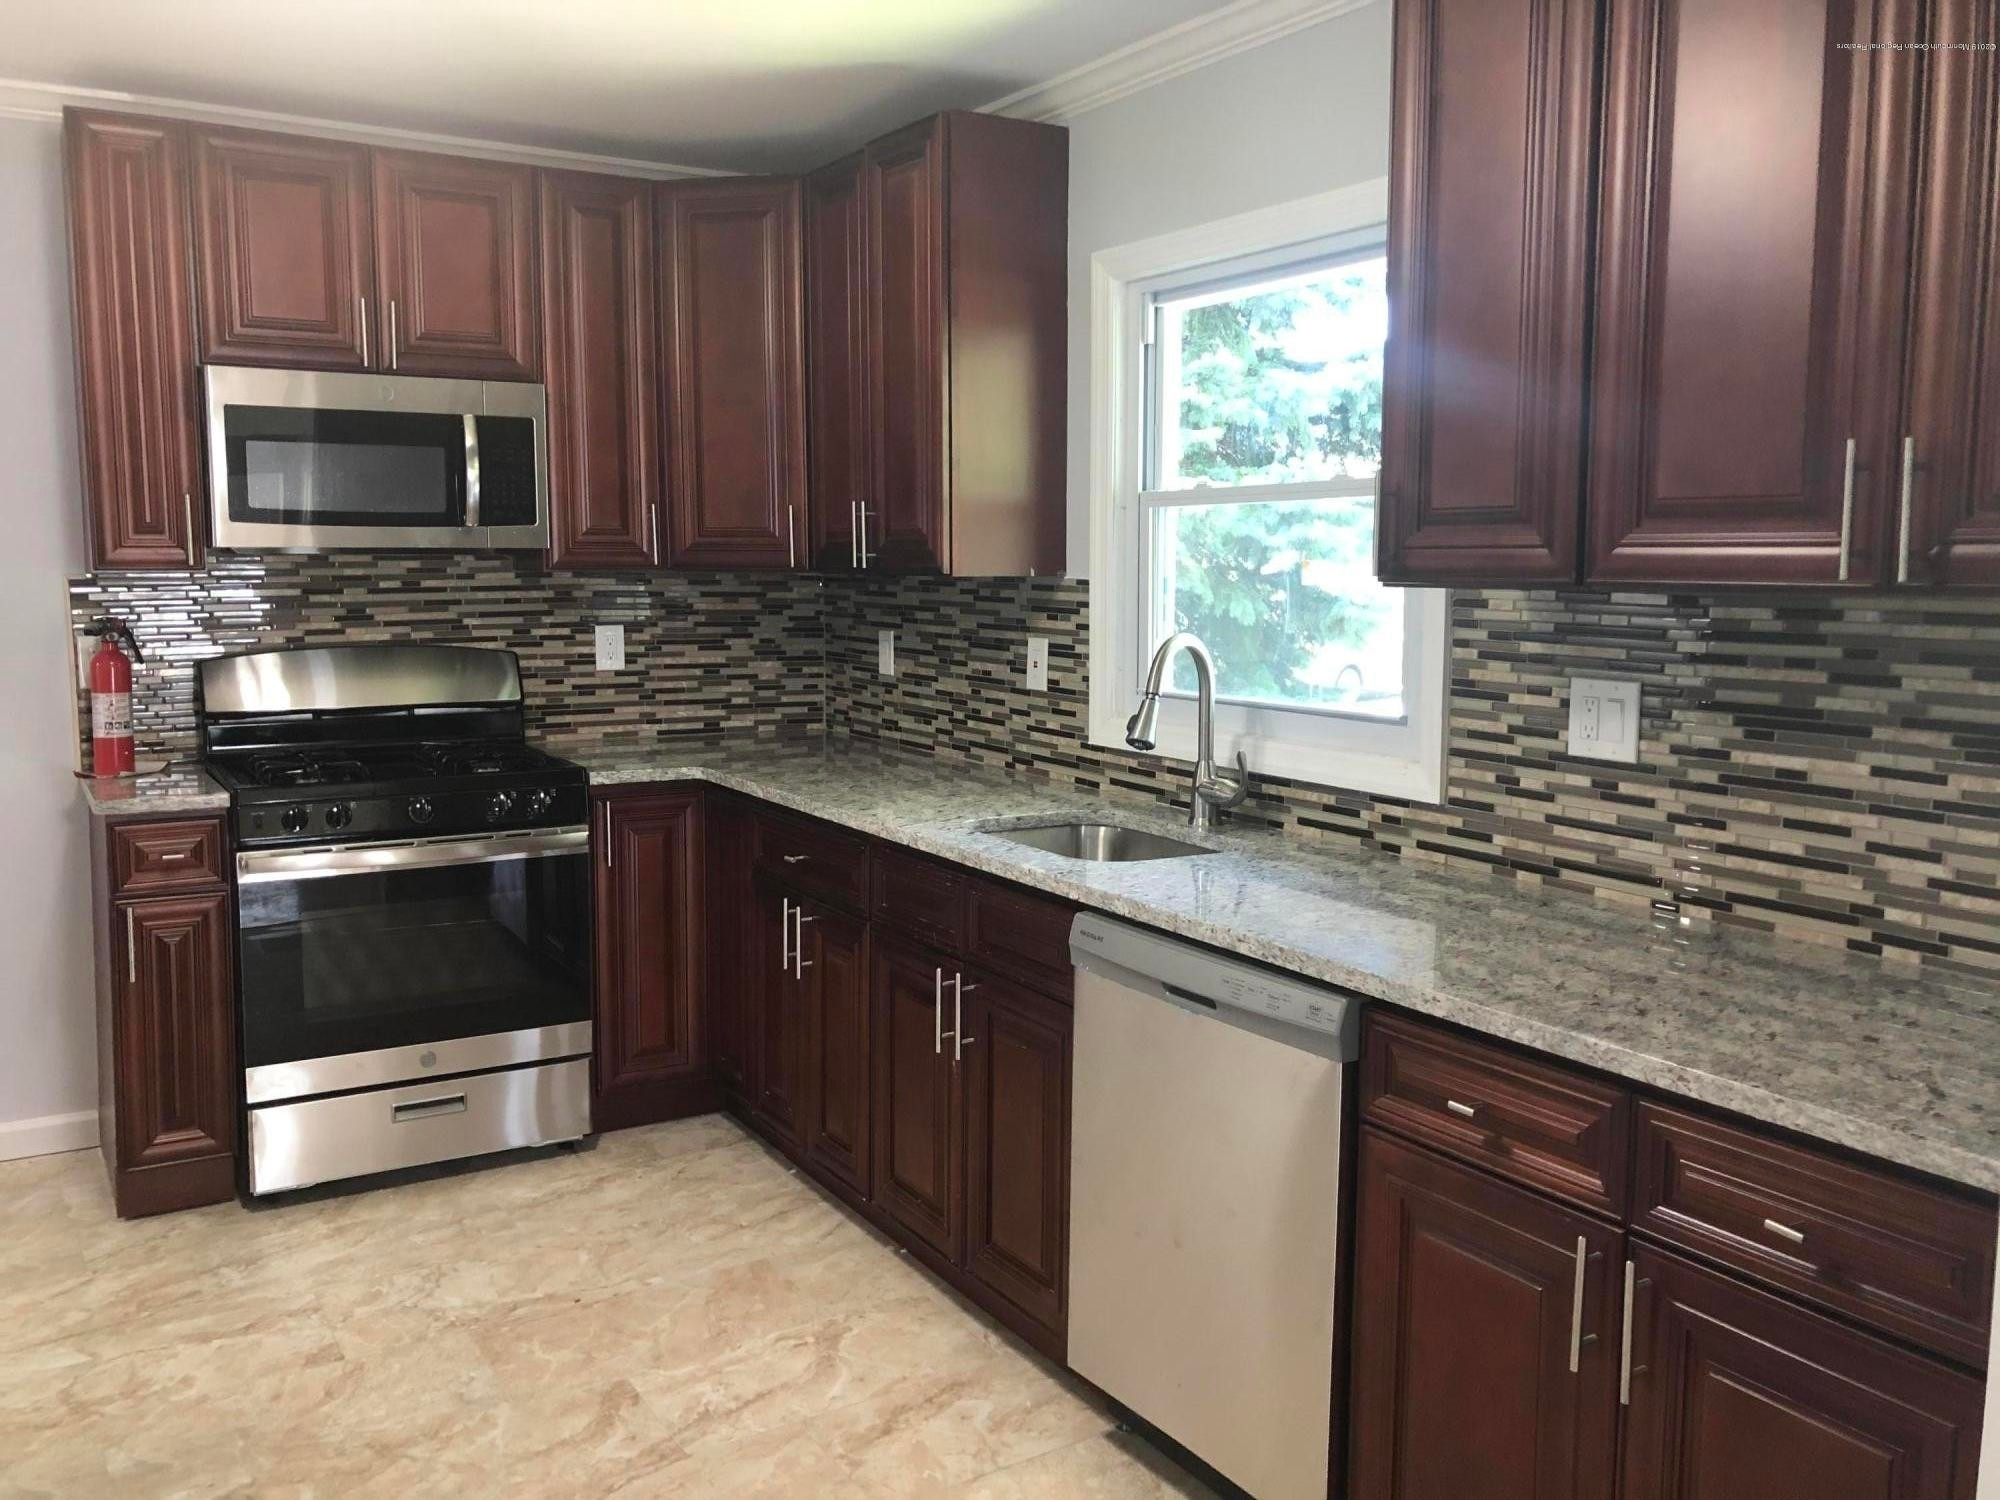 Rentals at 388 New Hampshire Lane, Unit 1 Bound Brook, NJ 08805